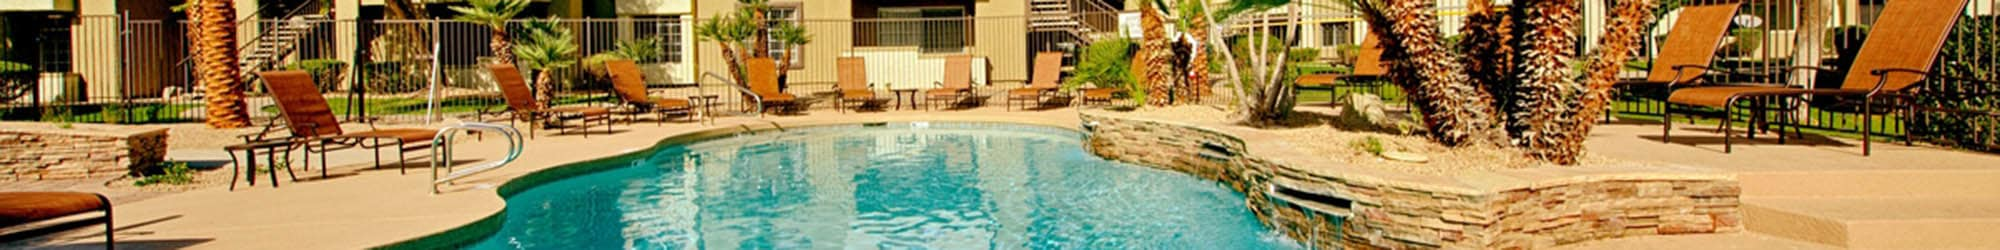 Amenities at Sedona Ridge in Phoenix, AZ